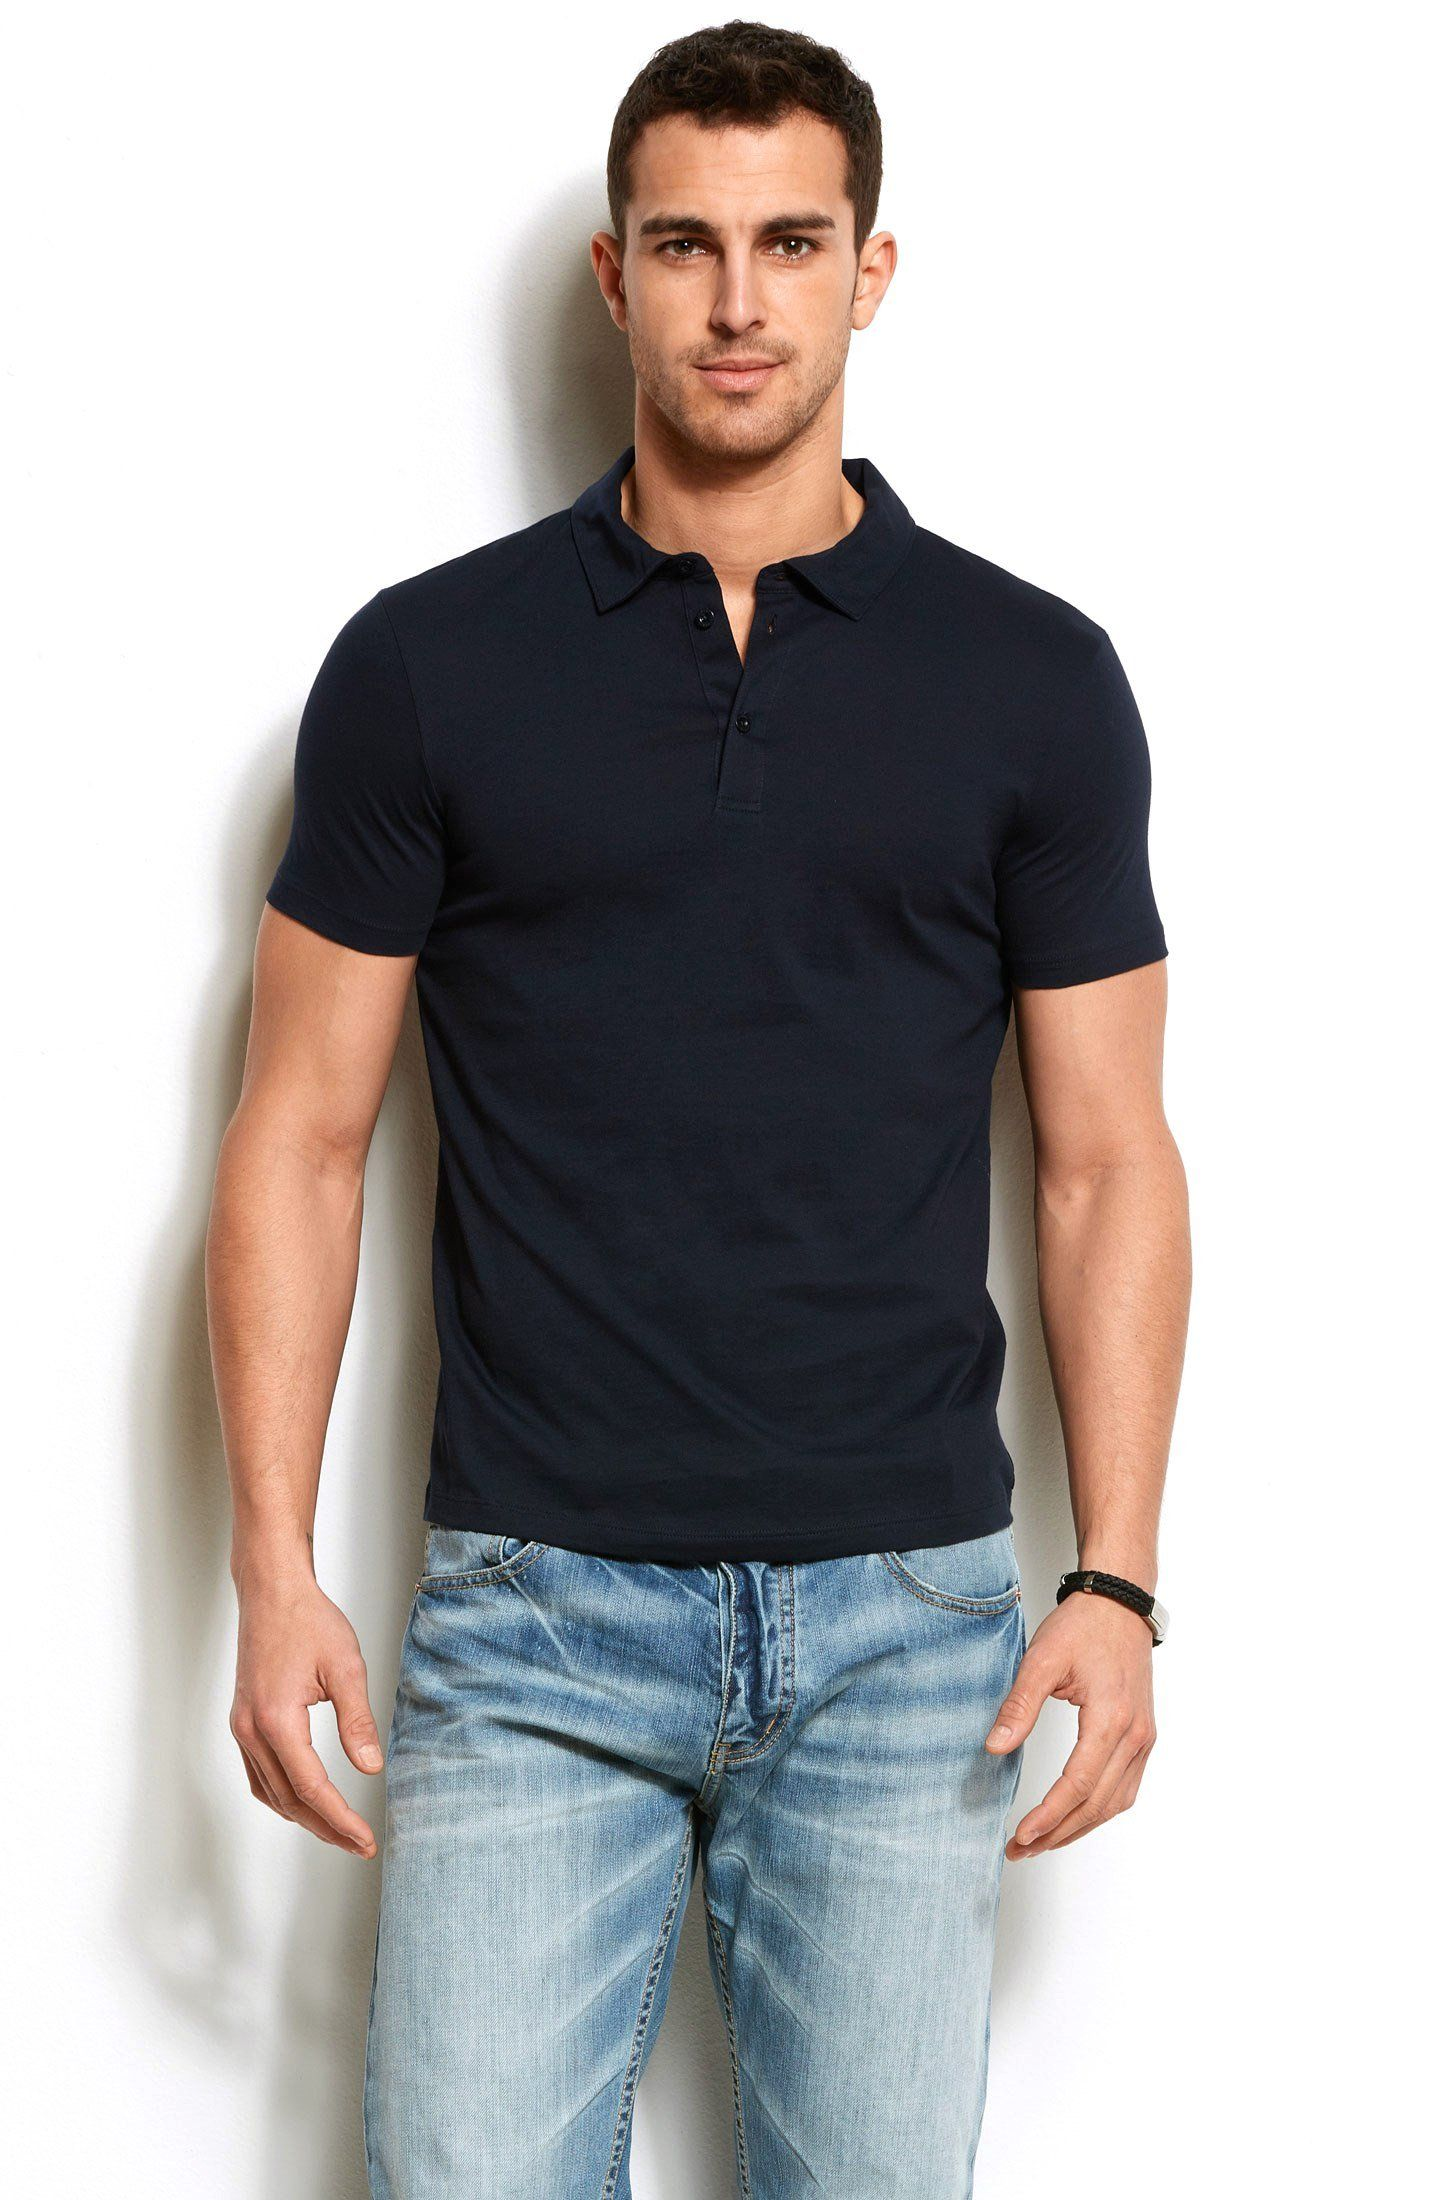 Cotton 29 Armani Pima Exchange Polo 99 Men´s Fashion Mens waTtqS